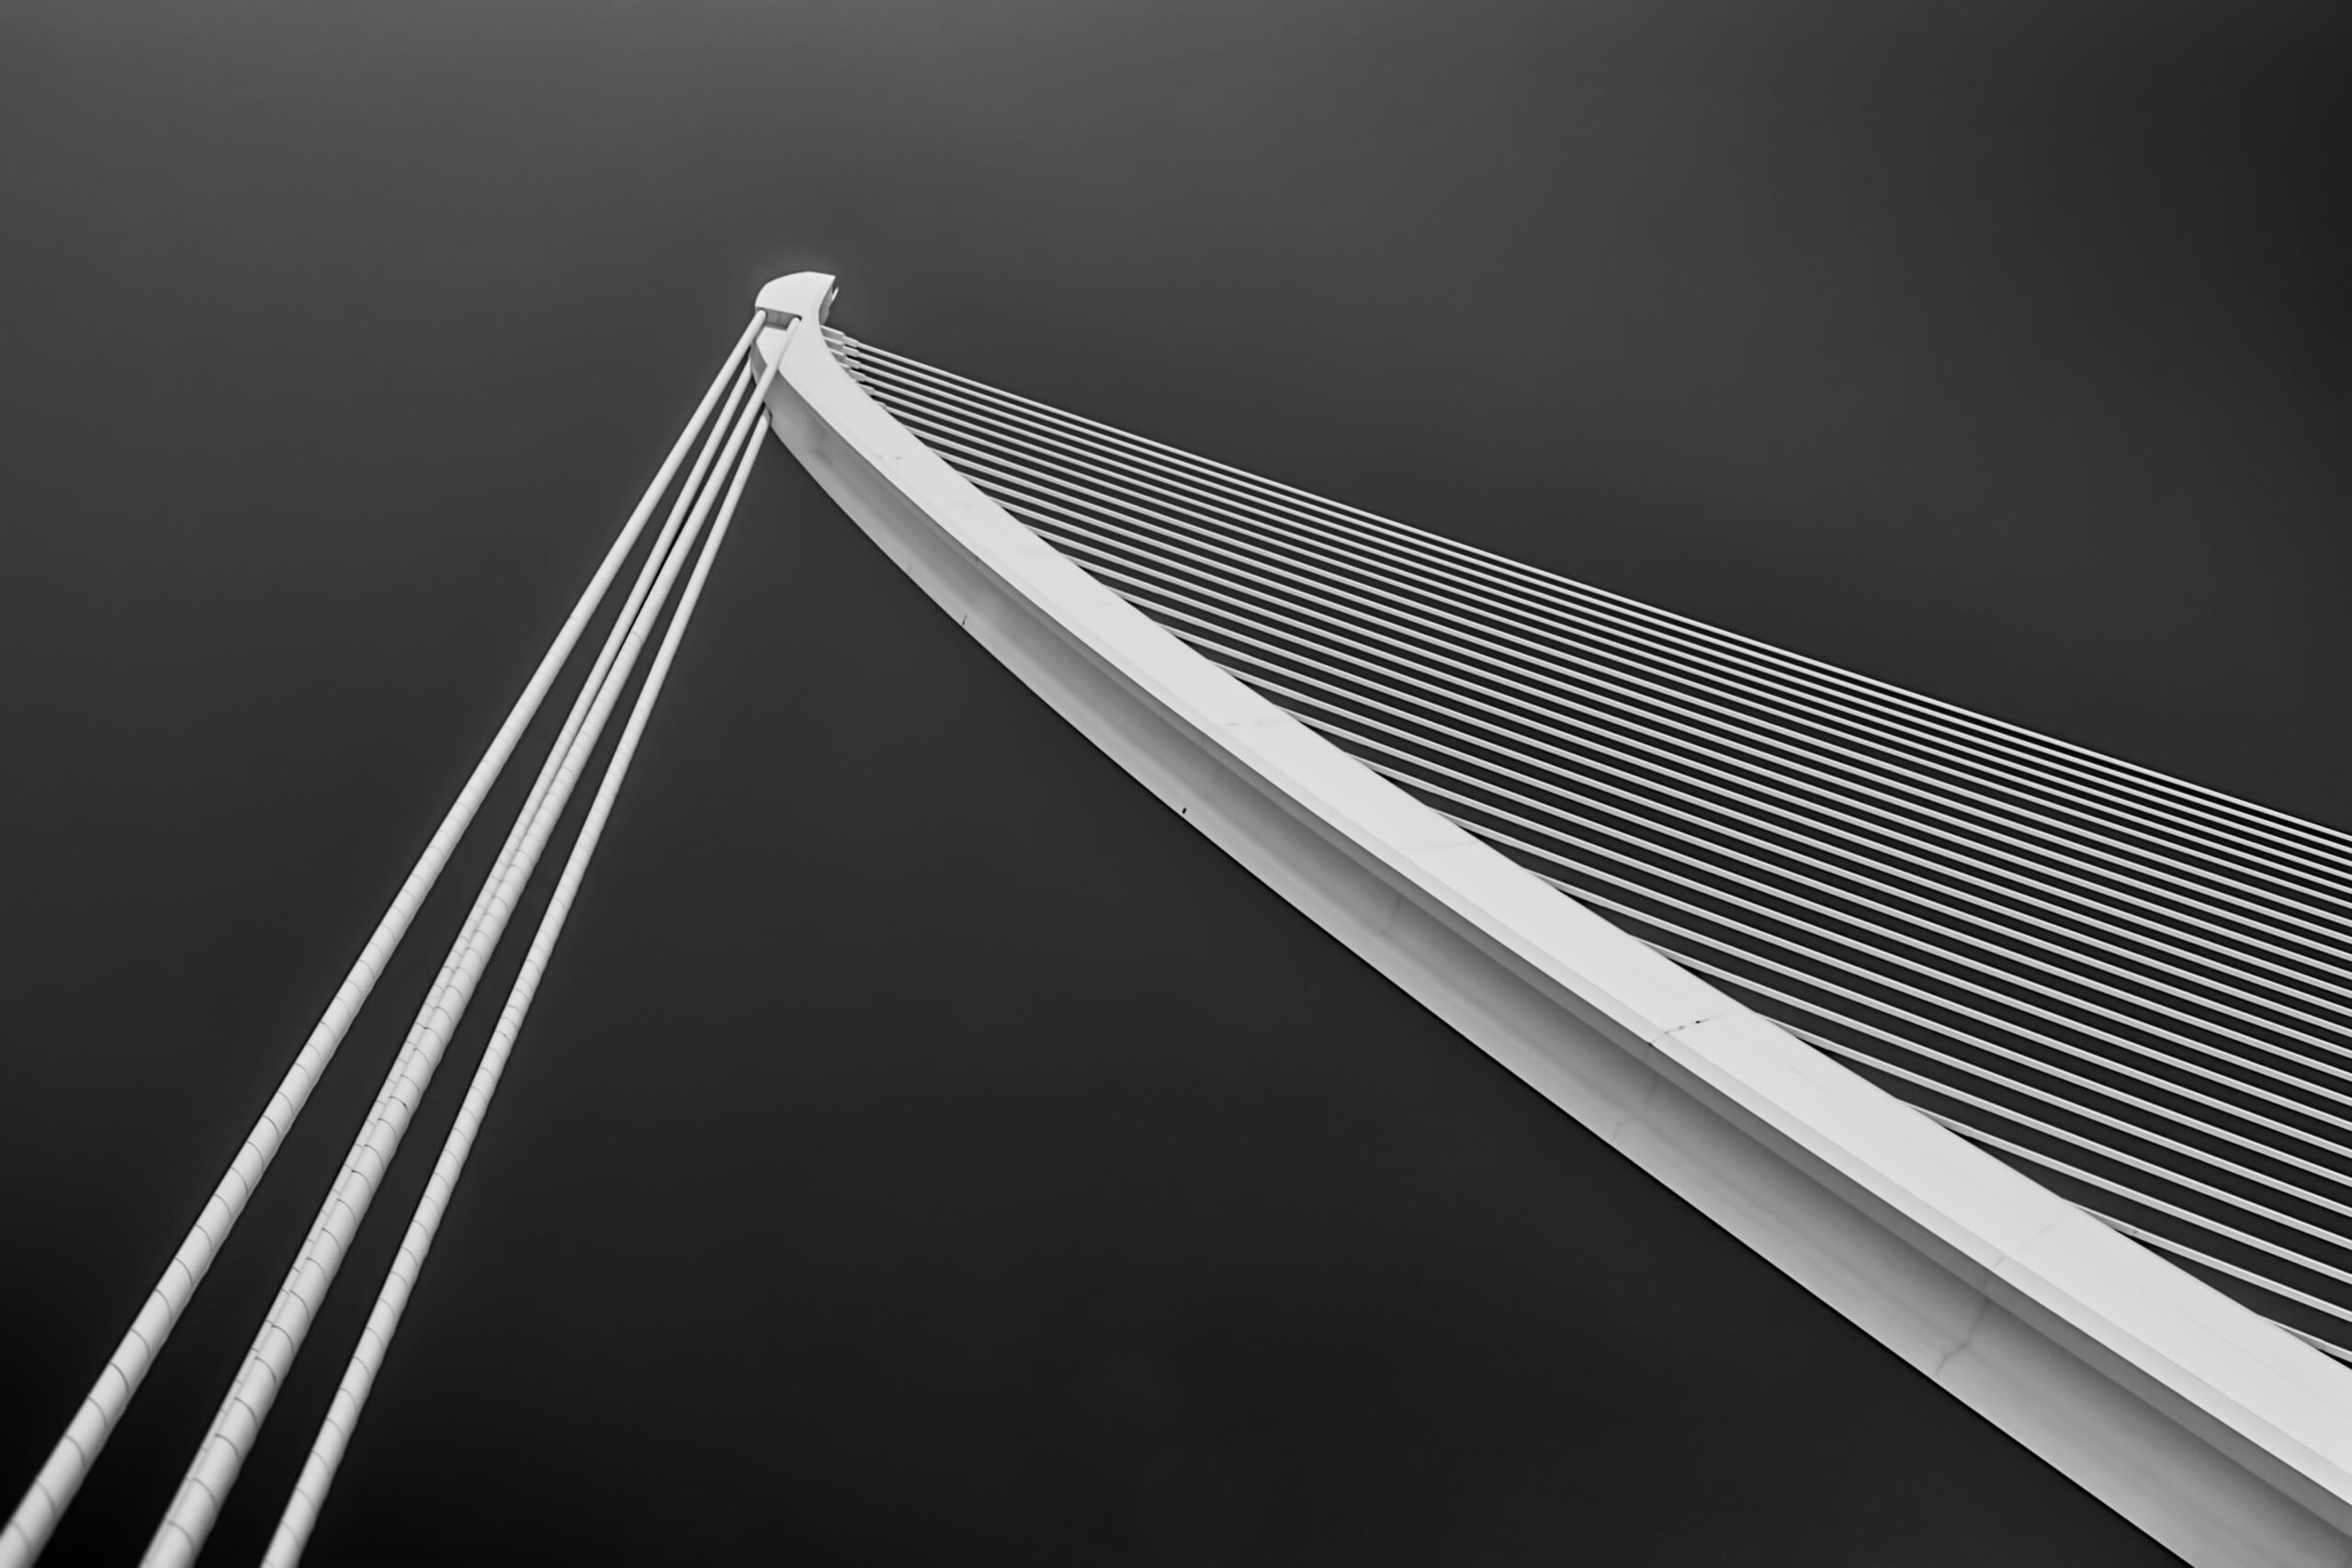 Abstract image of architecture - long white rods shooting up into the sky. The photo is black and white.